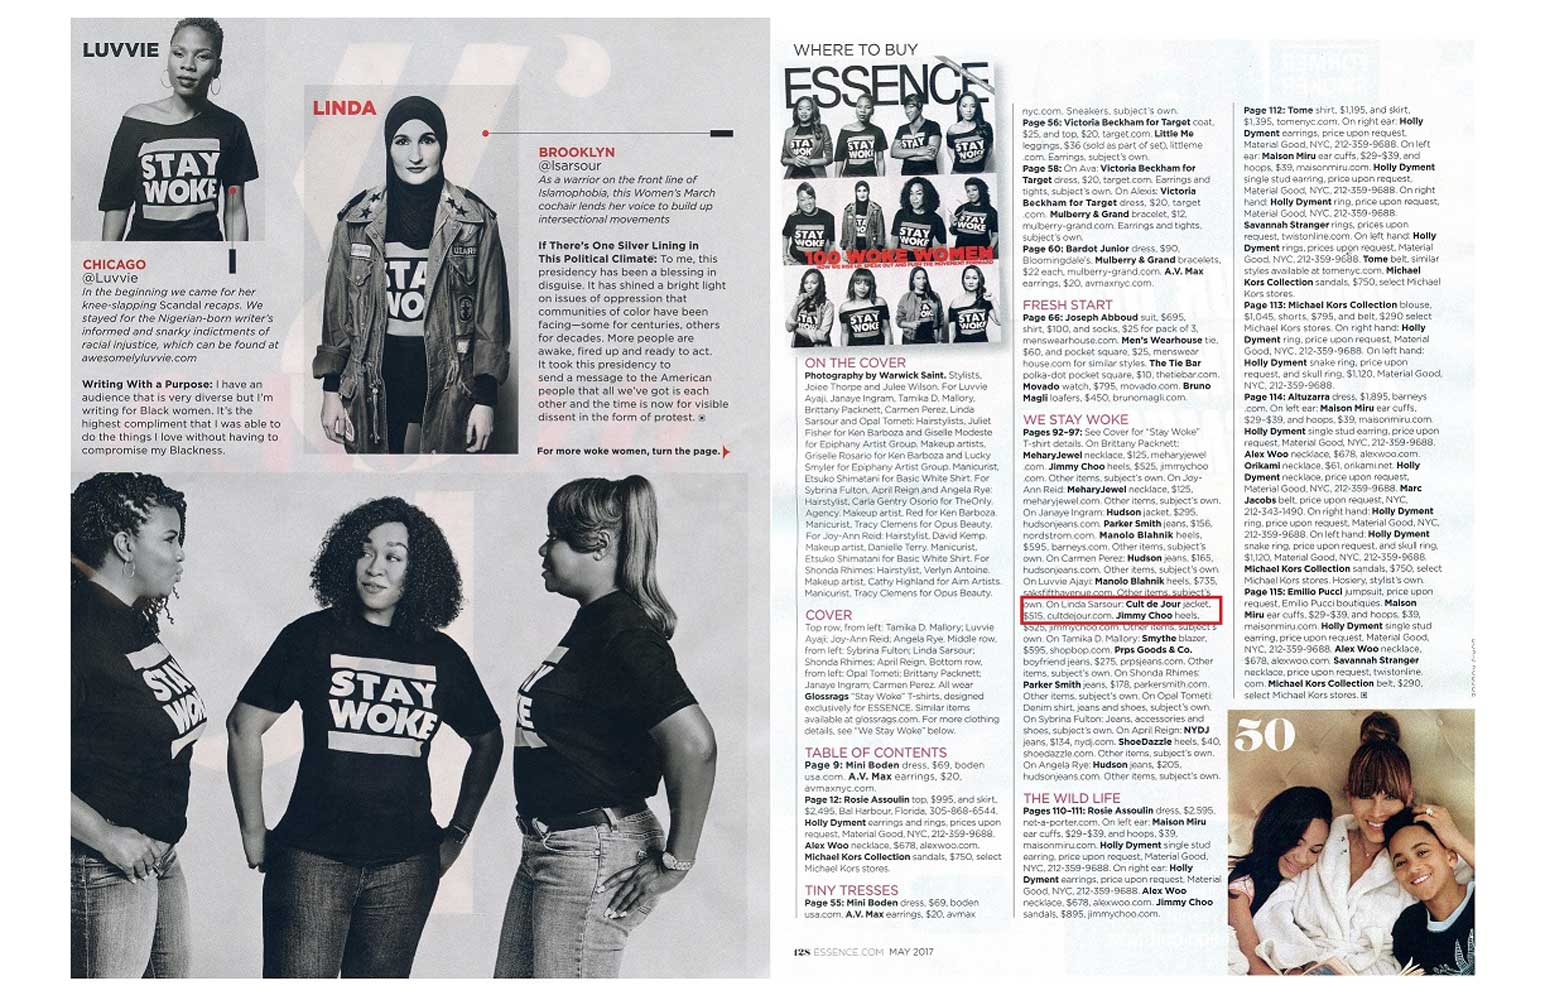 Essence Magazine page spread with photo of Cult de Jour jacket and credit to Cult de Jour. Text reads: On Linda Samsour: Cult de Jour jacket.